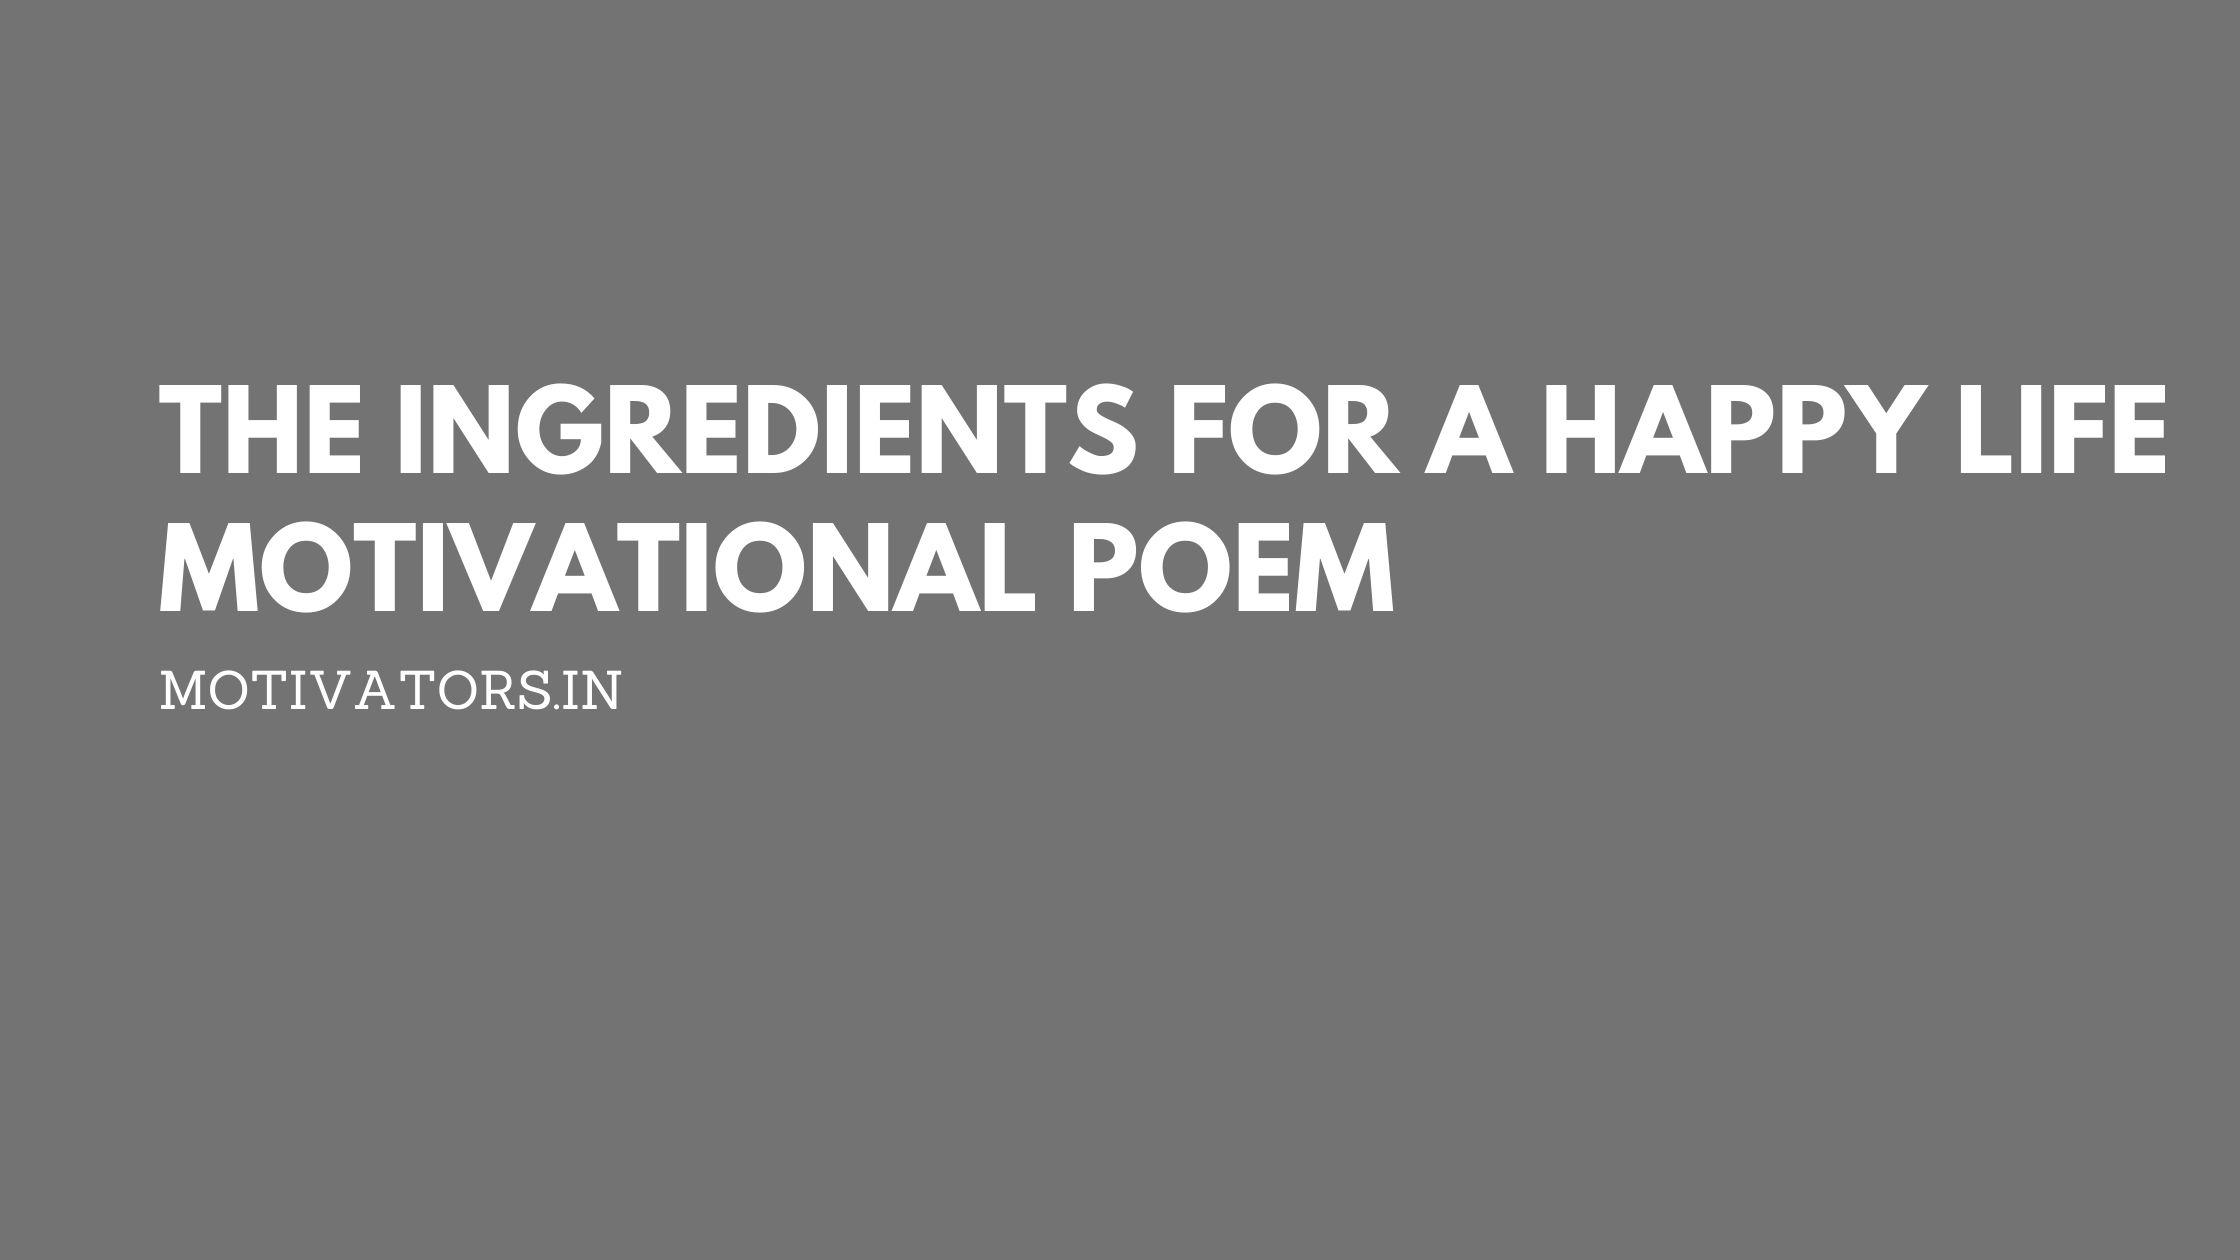 The Ingredients For A Happy Life Motivational Poem